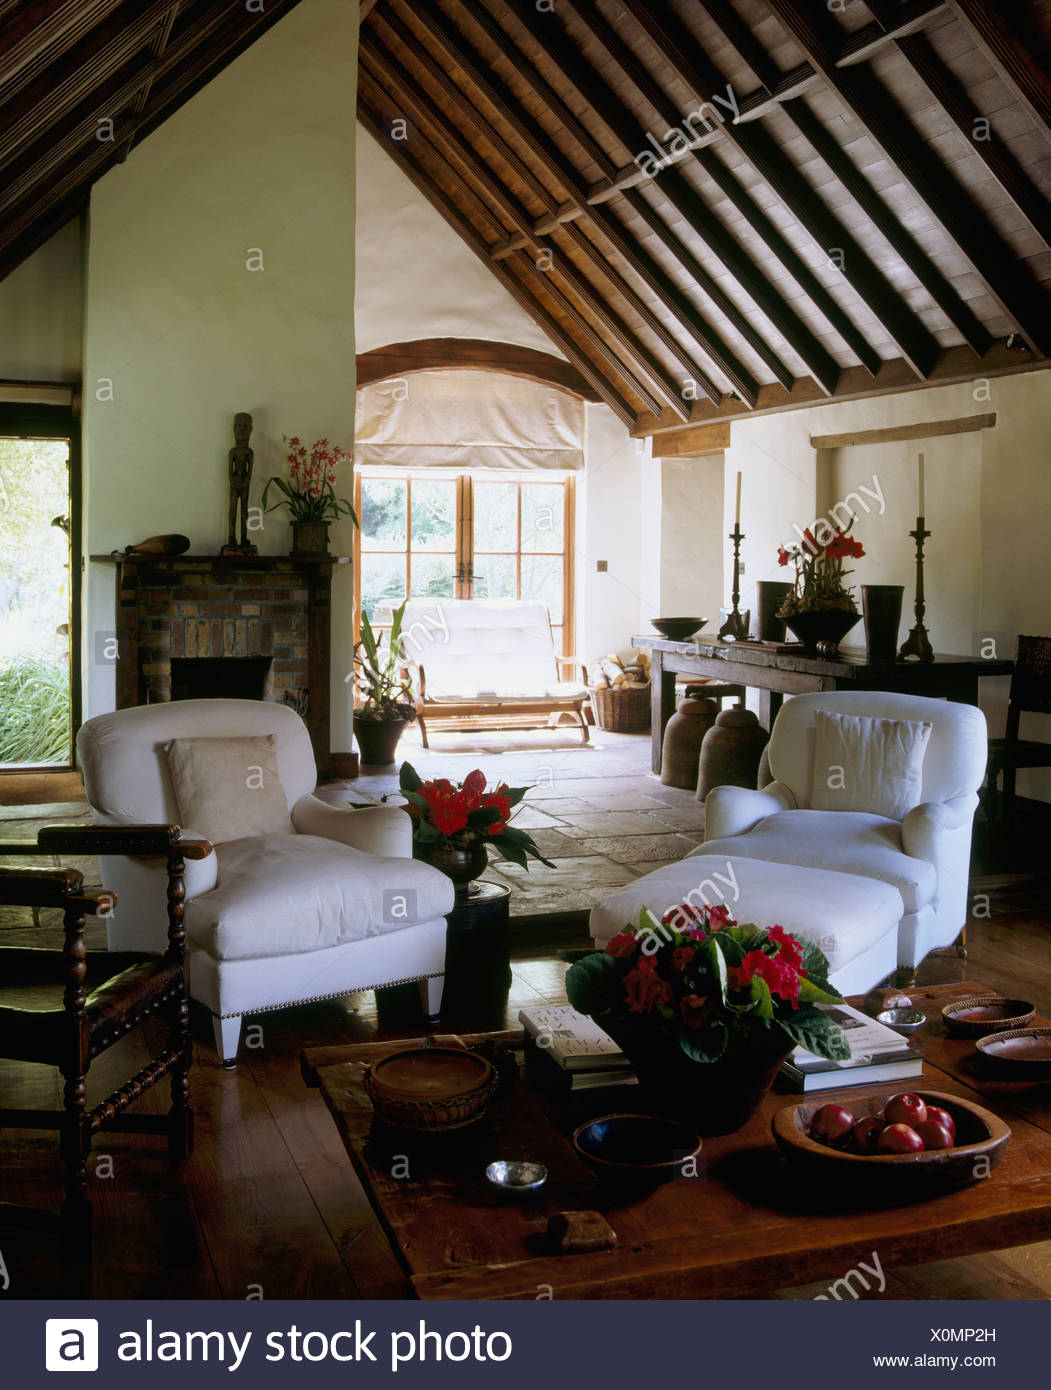 White armchairs and low wooden coffee table in country sitting room with a high, vaulted beamed ceiling Stock Photo